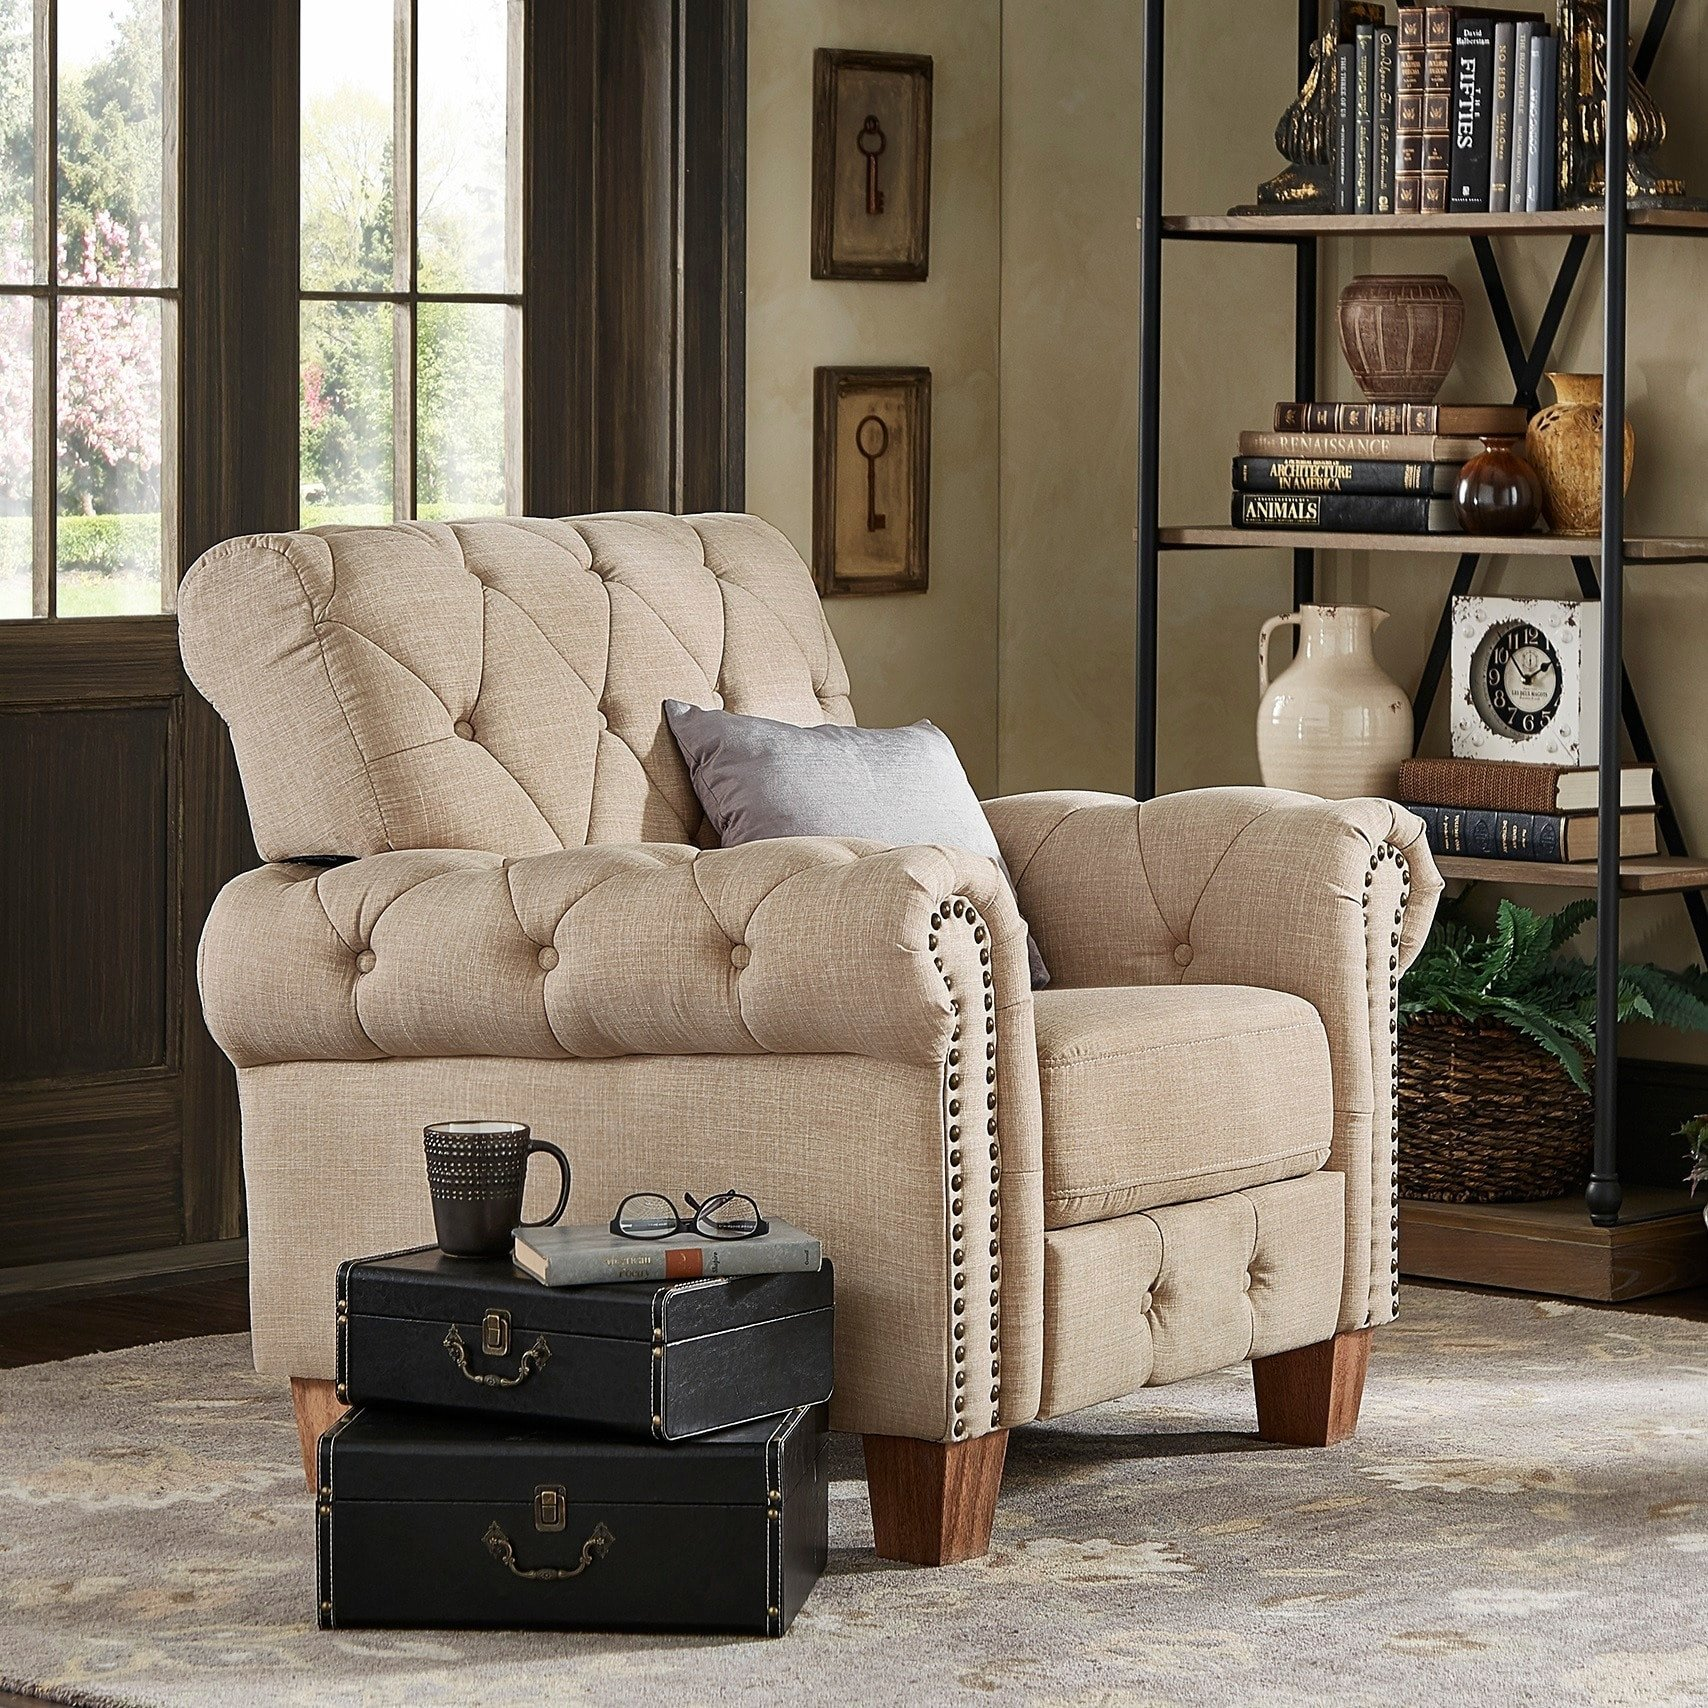 Small Comfy Chair for Bedroom Unique Small Recliners for Bedroom New Outstanding Living Room